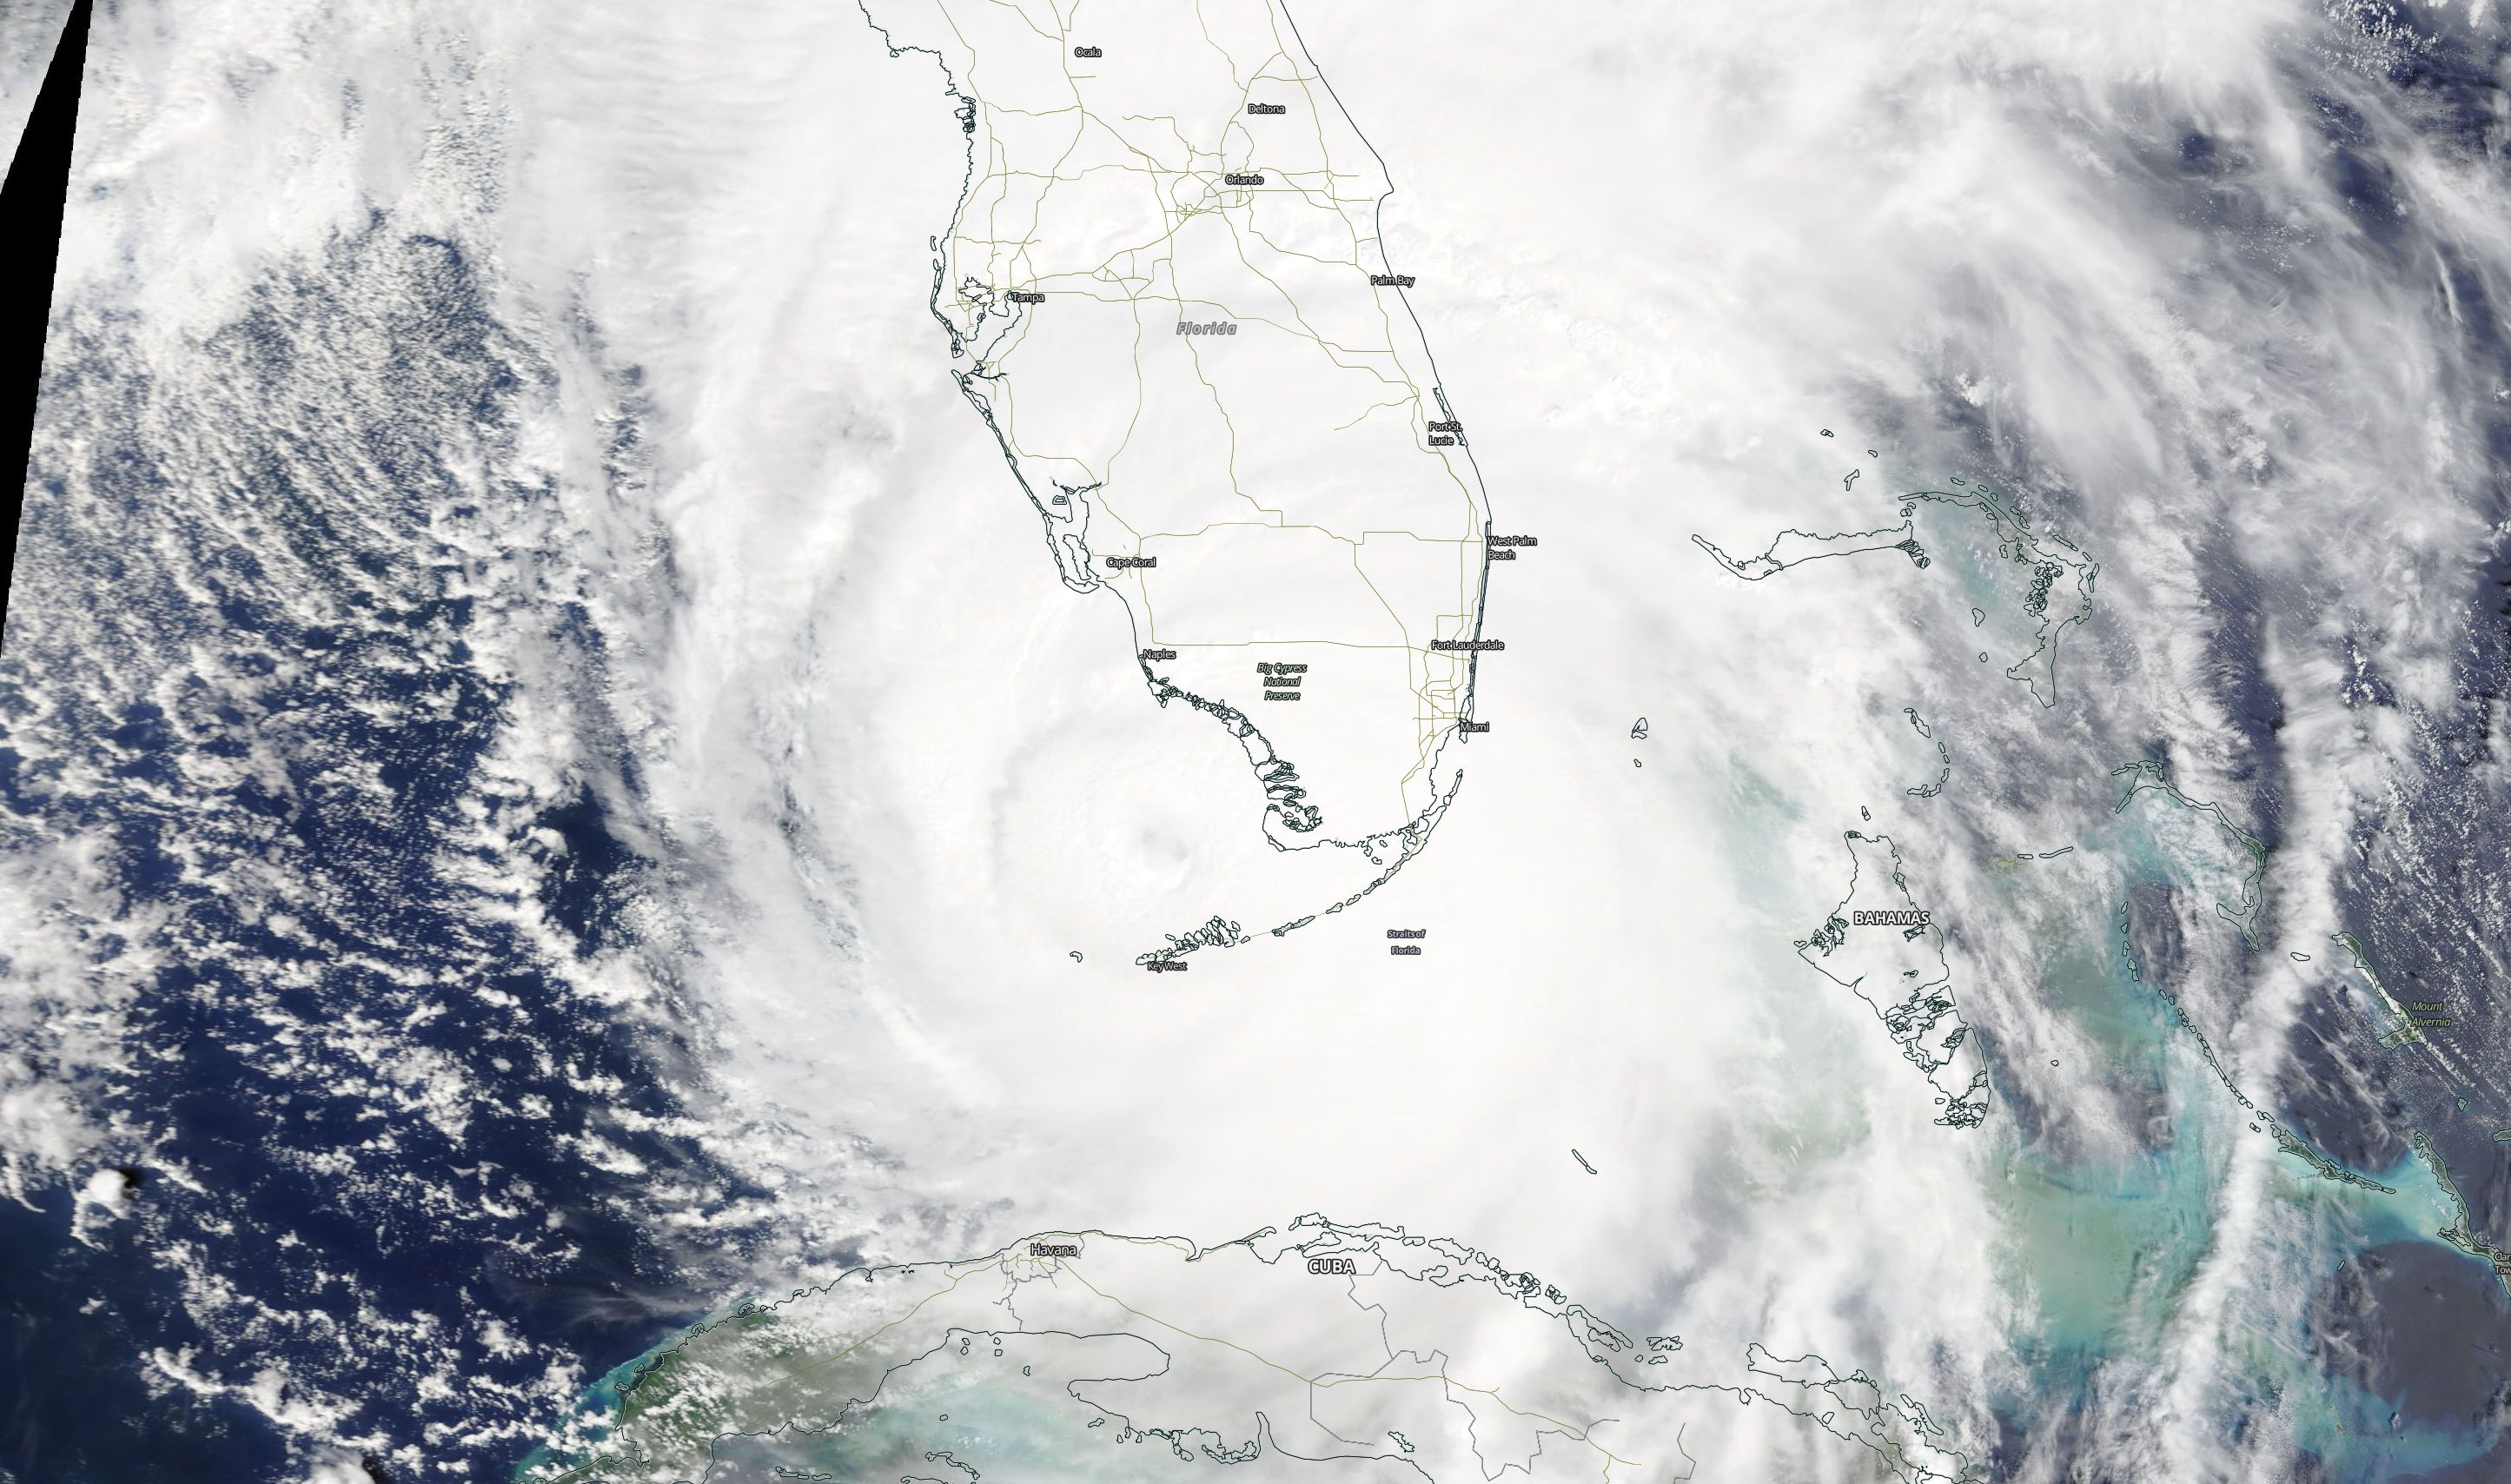 Hurricane Irma as seen on Sept. 10, 2017 (Photo: NASA/MODIS Satellite Image)